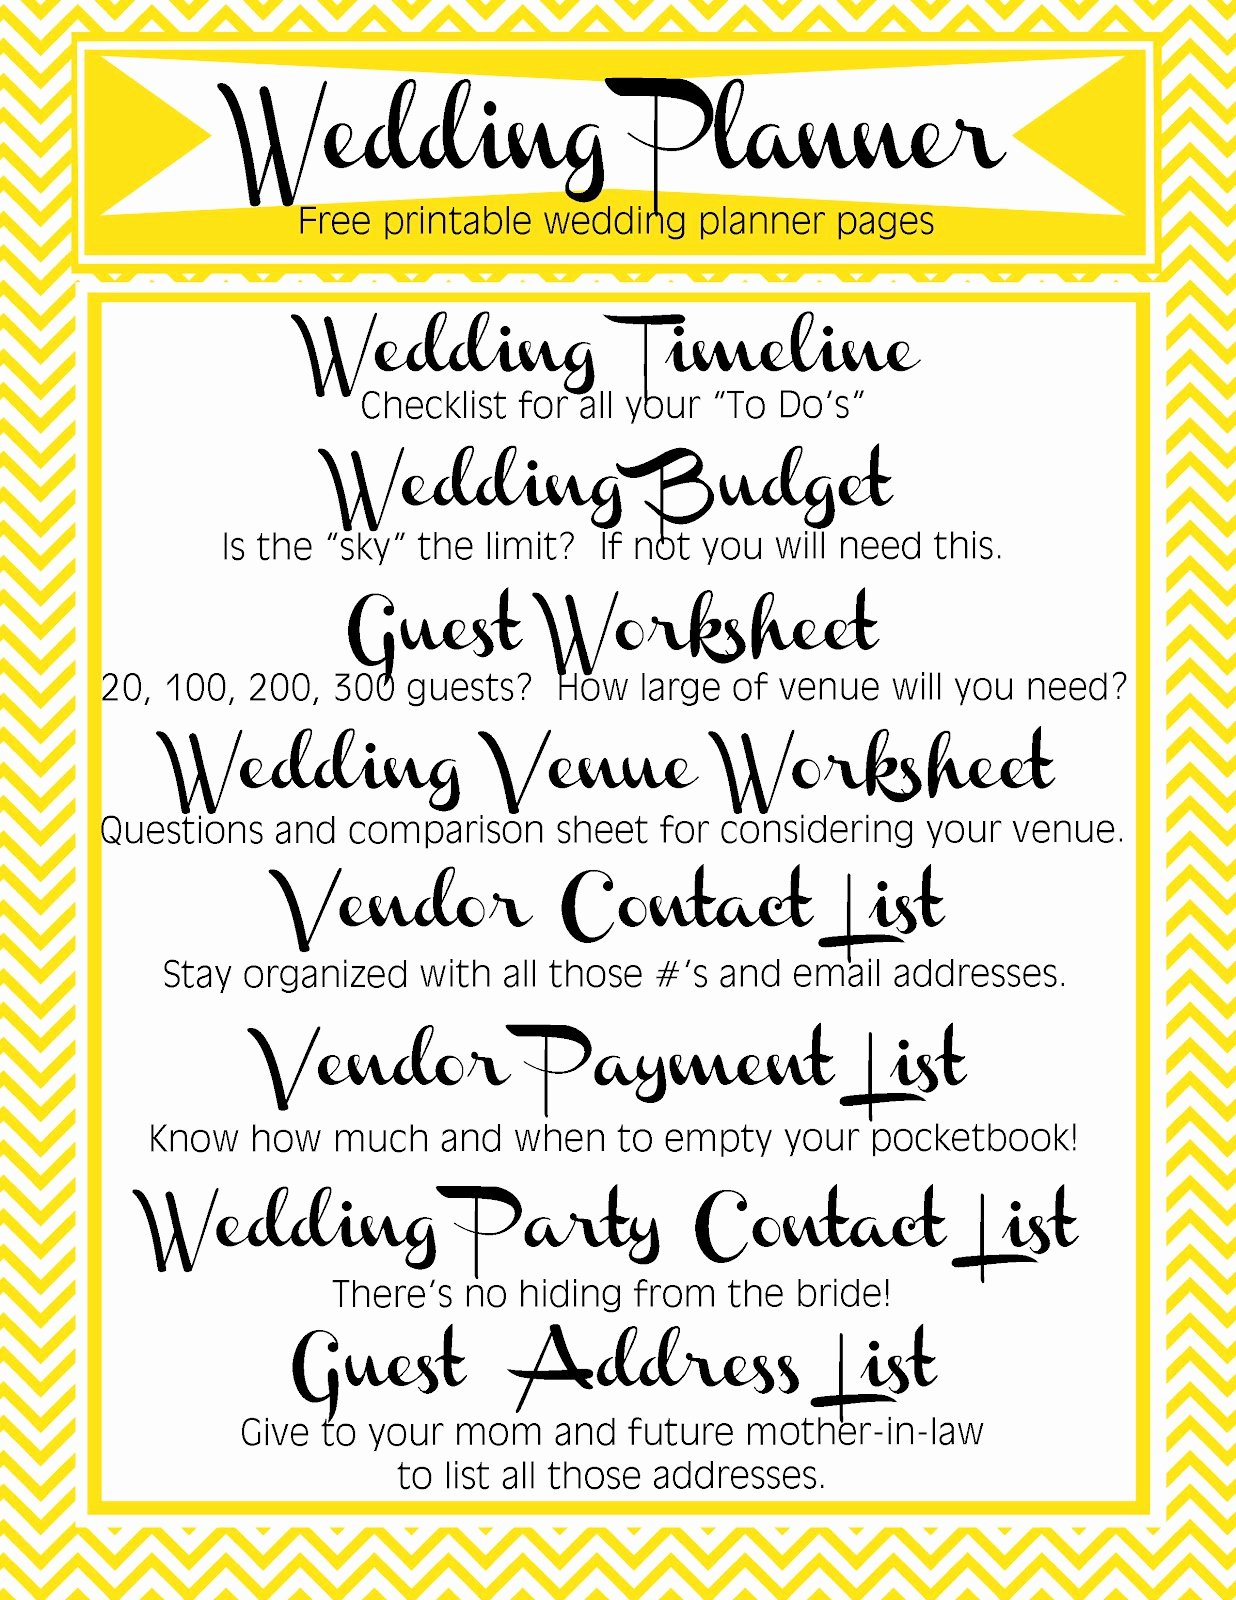 Wedding Vendor Contact List Template Awesome Tro O Blogg the Yellow Wallpaper Quotes Marriage